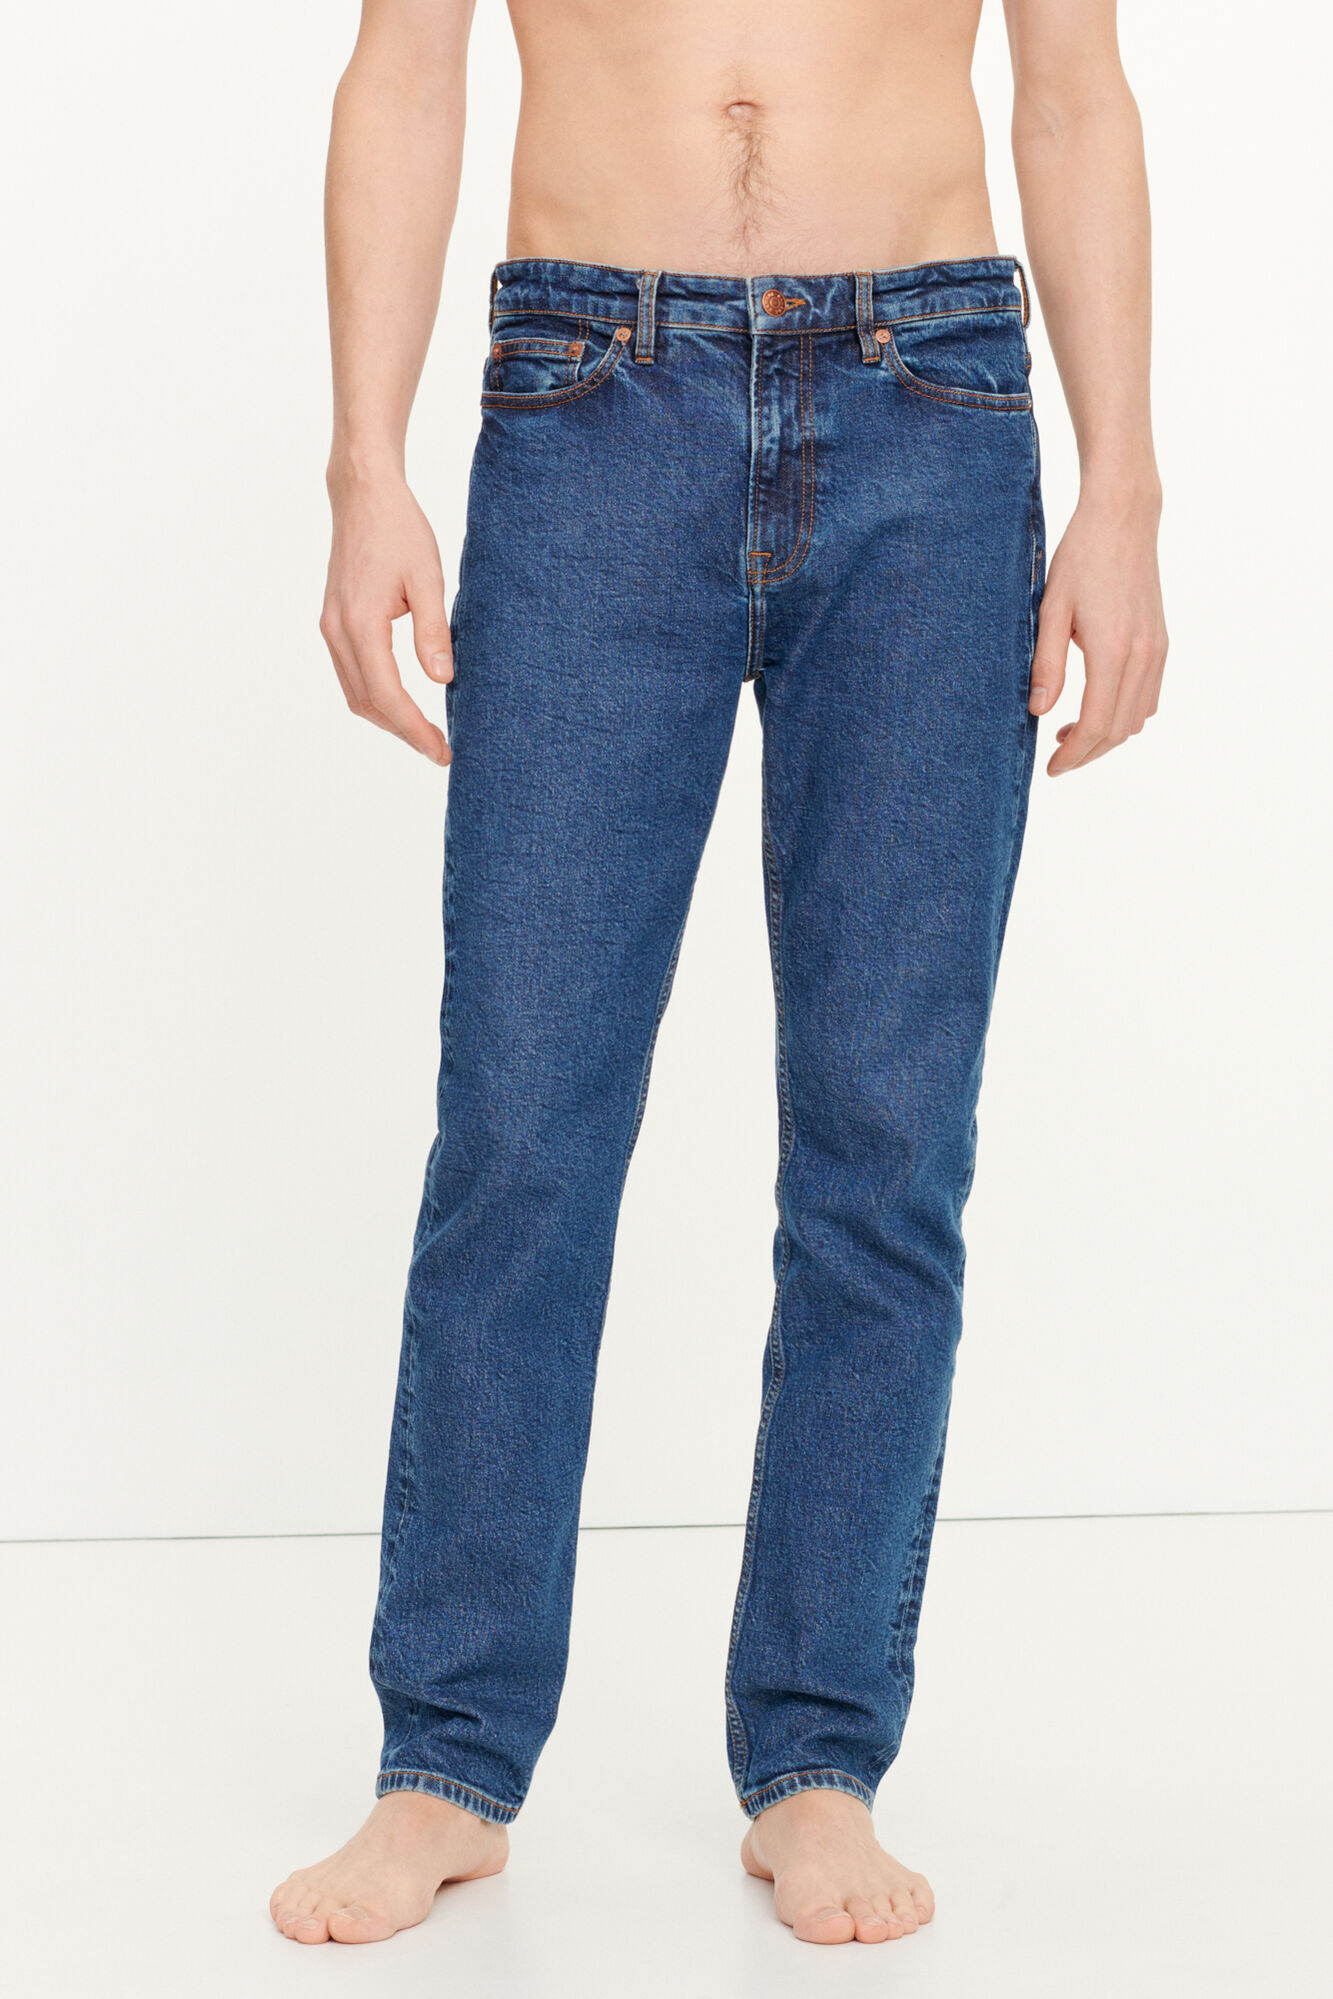 Rory jeans 11358